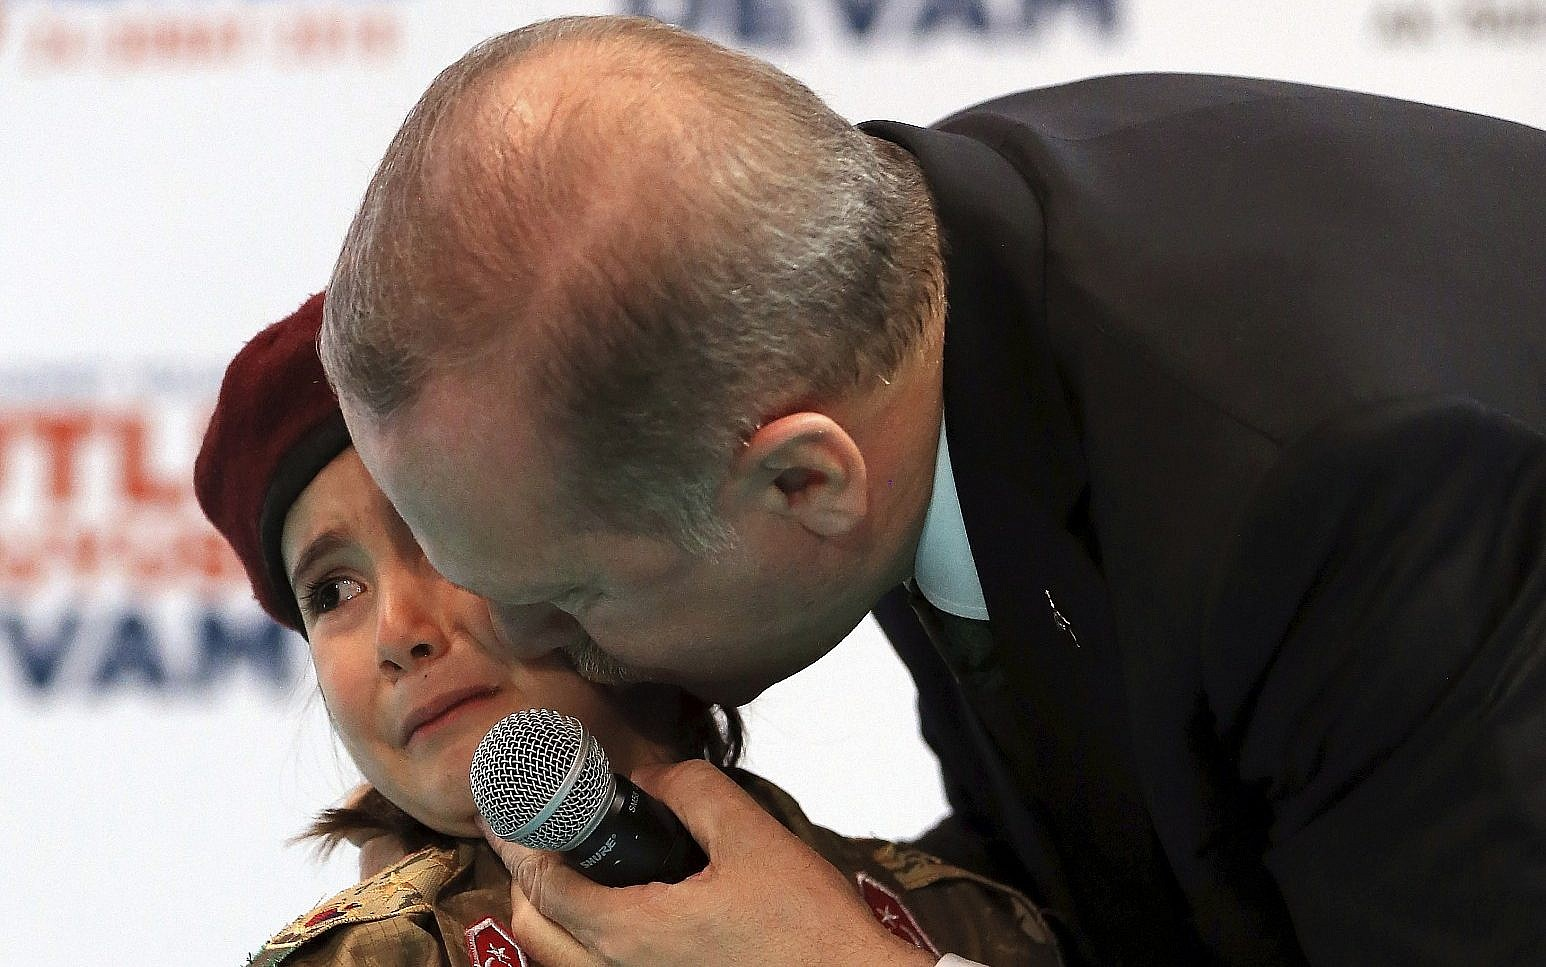 2018 Turkish President Recep Tayyip Erdogan kisses Amine Tiras a young girl in military uniform as he speaks to his ruling party members in Kahramanmaras Turkey